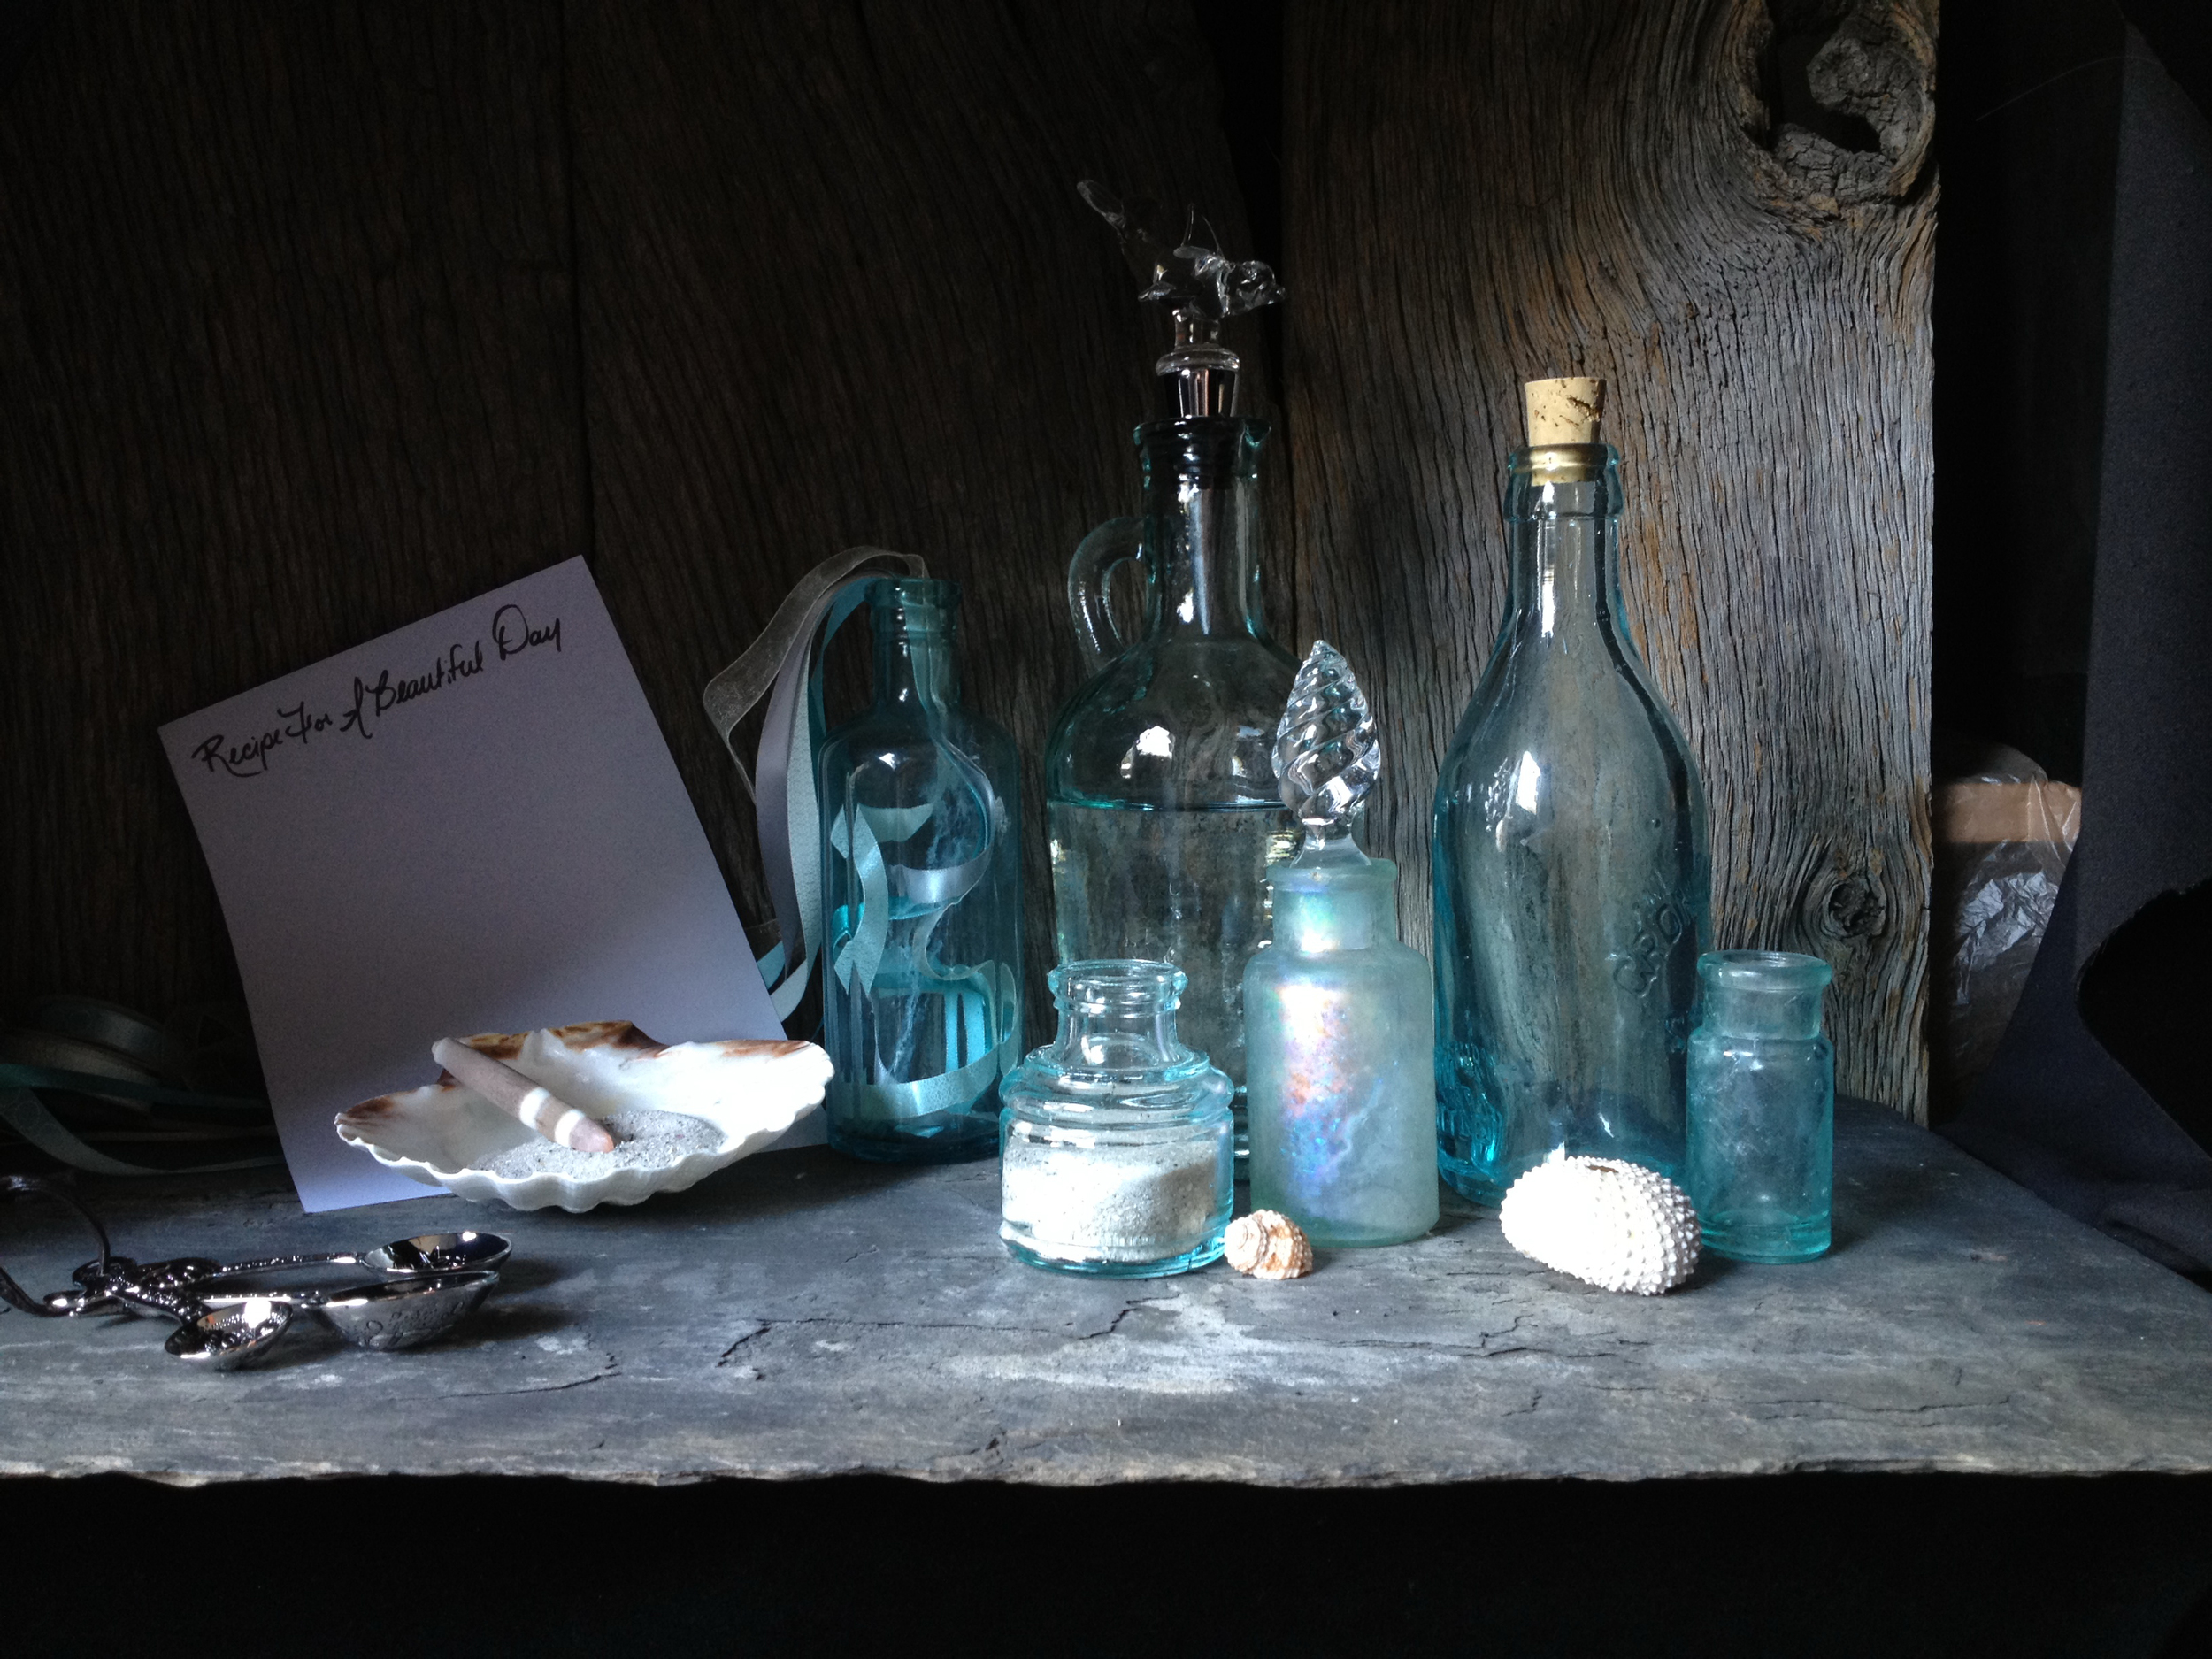 First, I placed weathered barn wood and a slate roof tile into my shadowbox for the background and stage for my still life. The colors of these two natural items harmonized well and I felt that also created a nice ambiance for the story. Next, I added all the bottles and seashells I thought that I would be using onto the stage and arranged them in a visually pleasing manner.